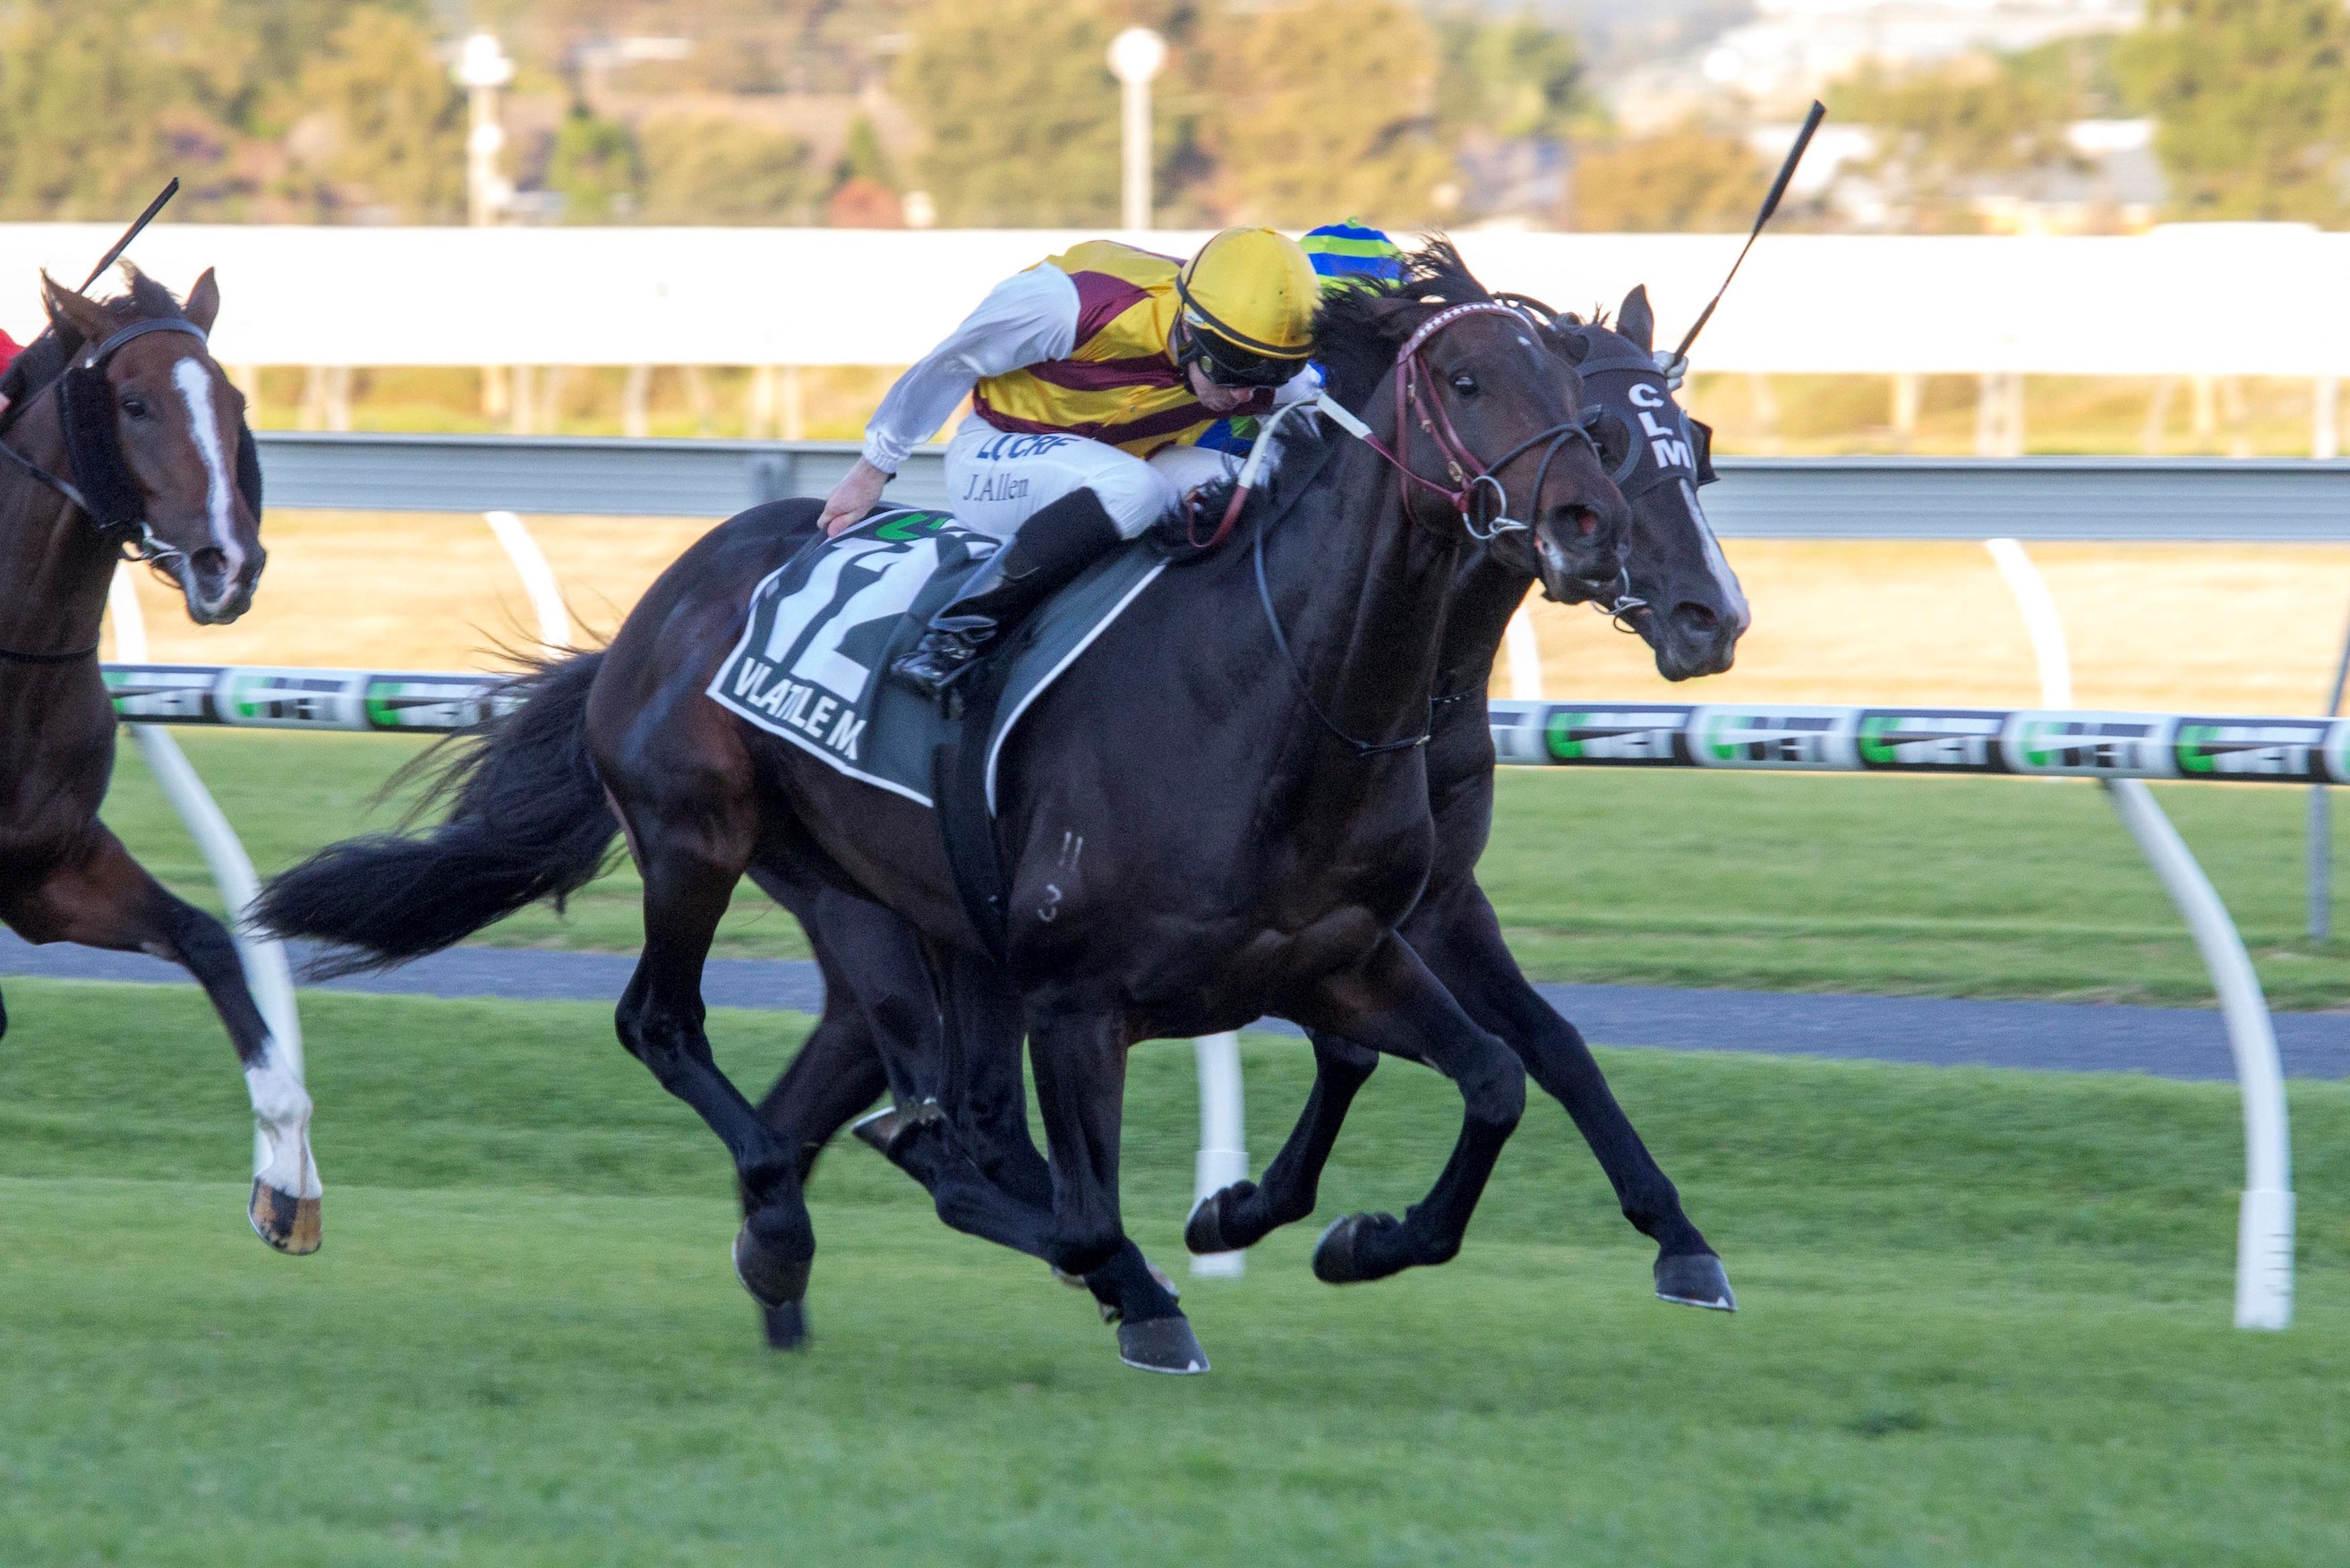 Volatile Mix takes the South Australian Derby at Morphettville under jockey John Allen. Photo: Atkins Photography